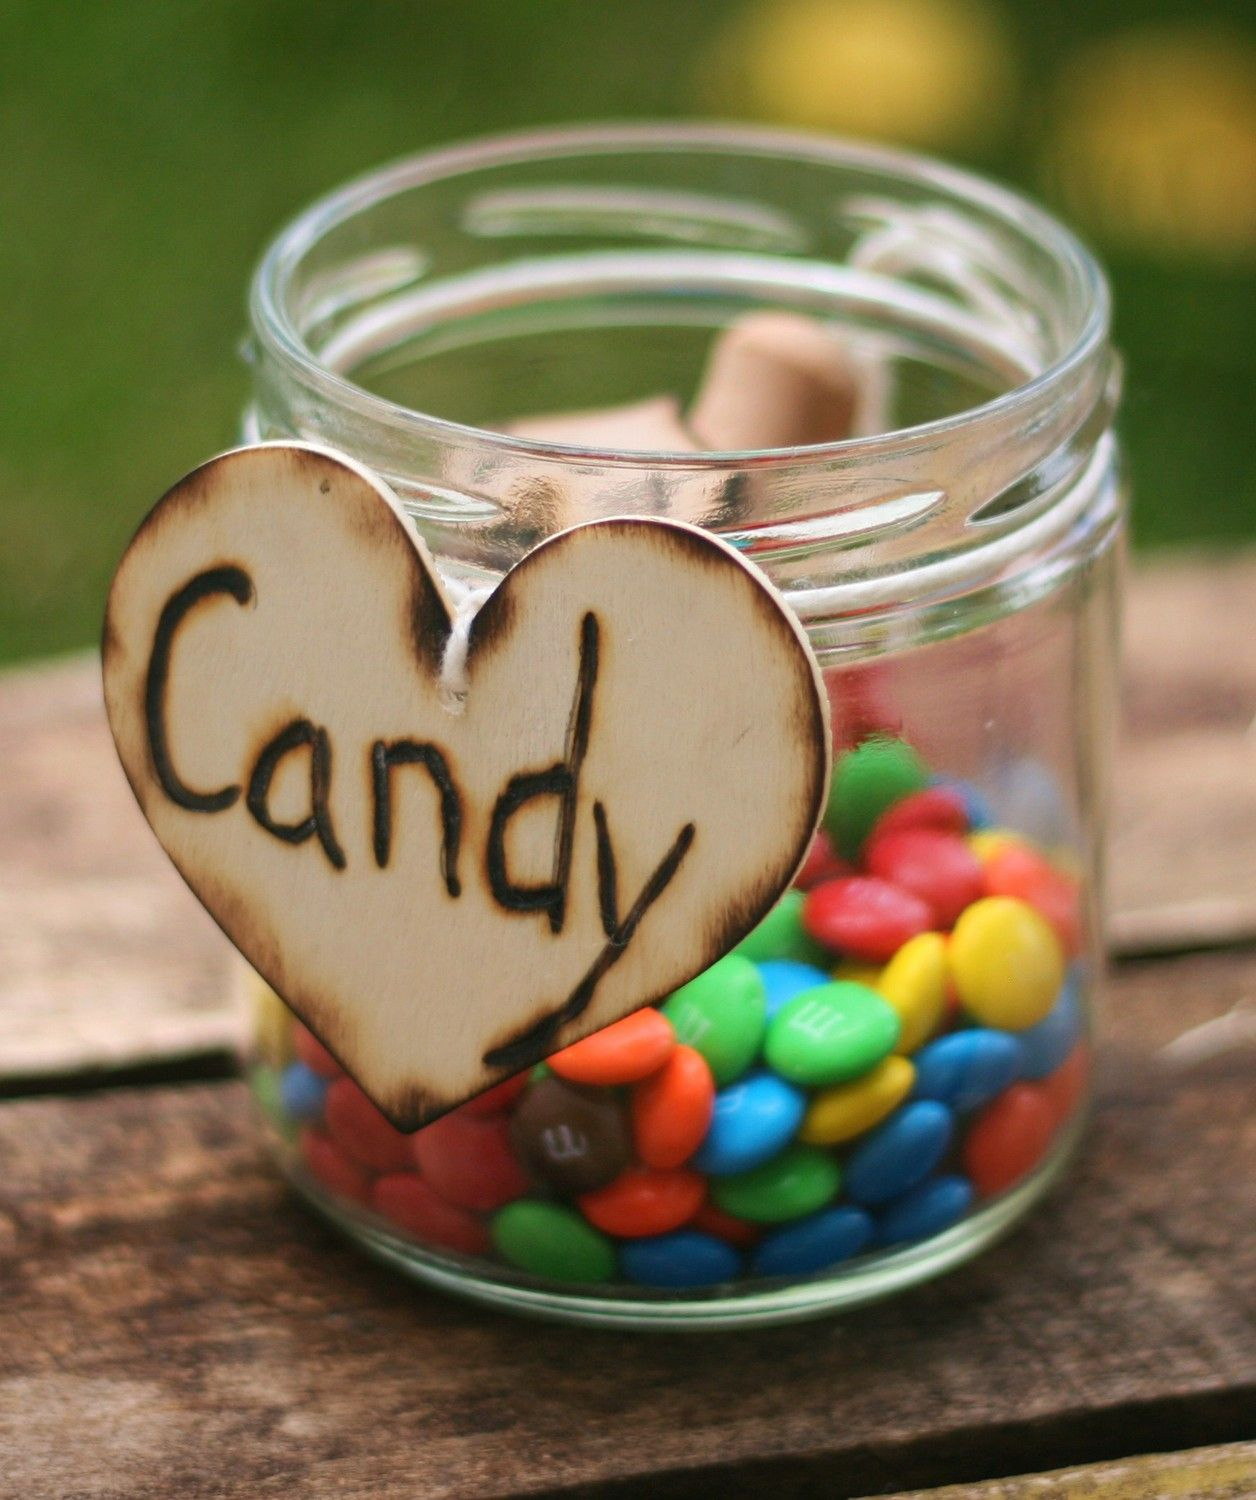 Engraved Rustic Wood Heart Candy Charms With Wood Heart